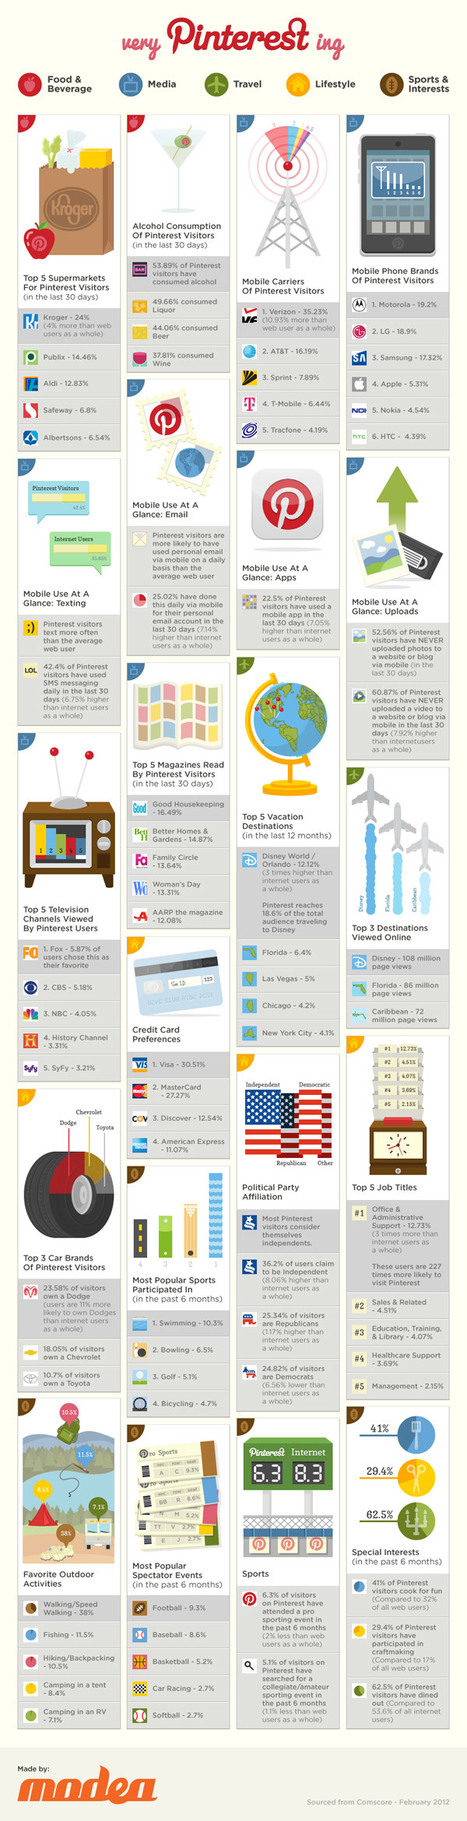 Very Pinterest-ing (Infographic) | Business 2 Community | Pinterest | Scoop.it